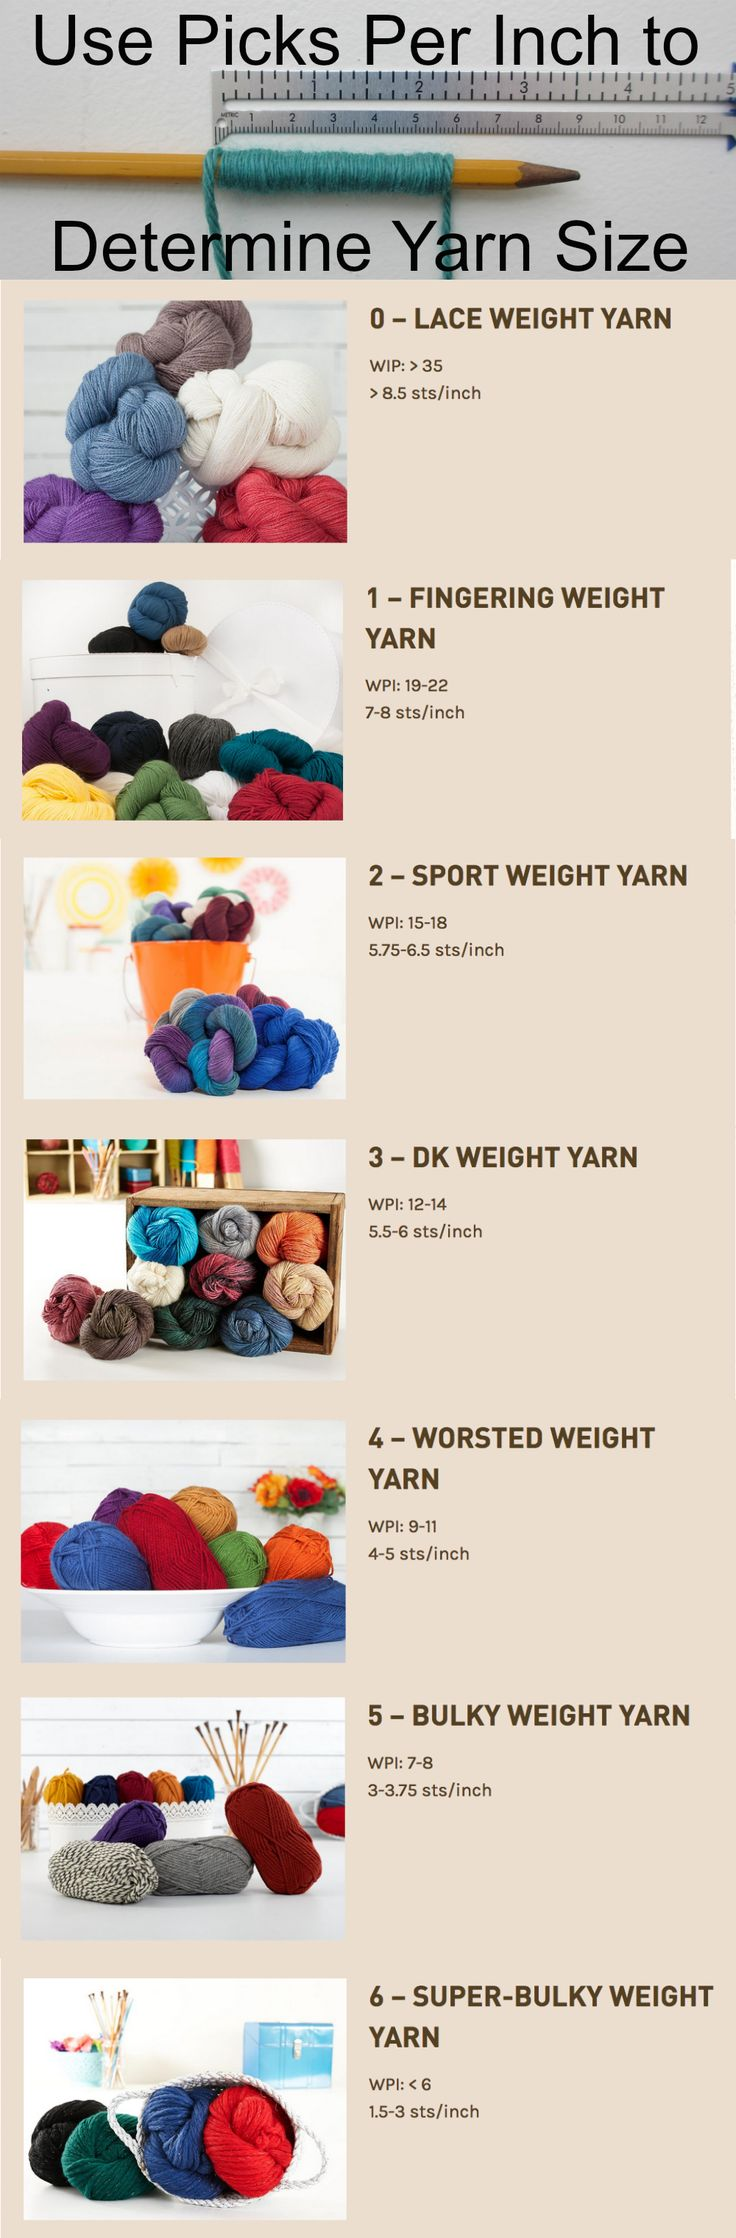 Got yarn with missing labels? Calculate Picks Per Inch to determine the yarn size so you know if you can use it in a pattern you like. 4Ufrom KnittingGuru http://www.KnittingGuru.etsy.com